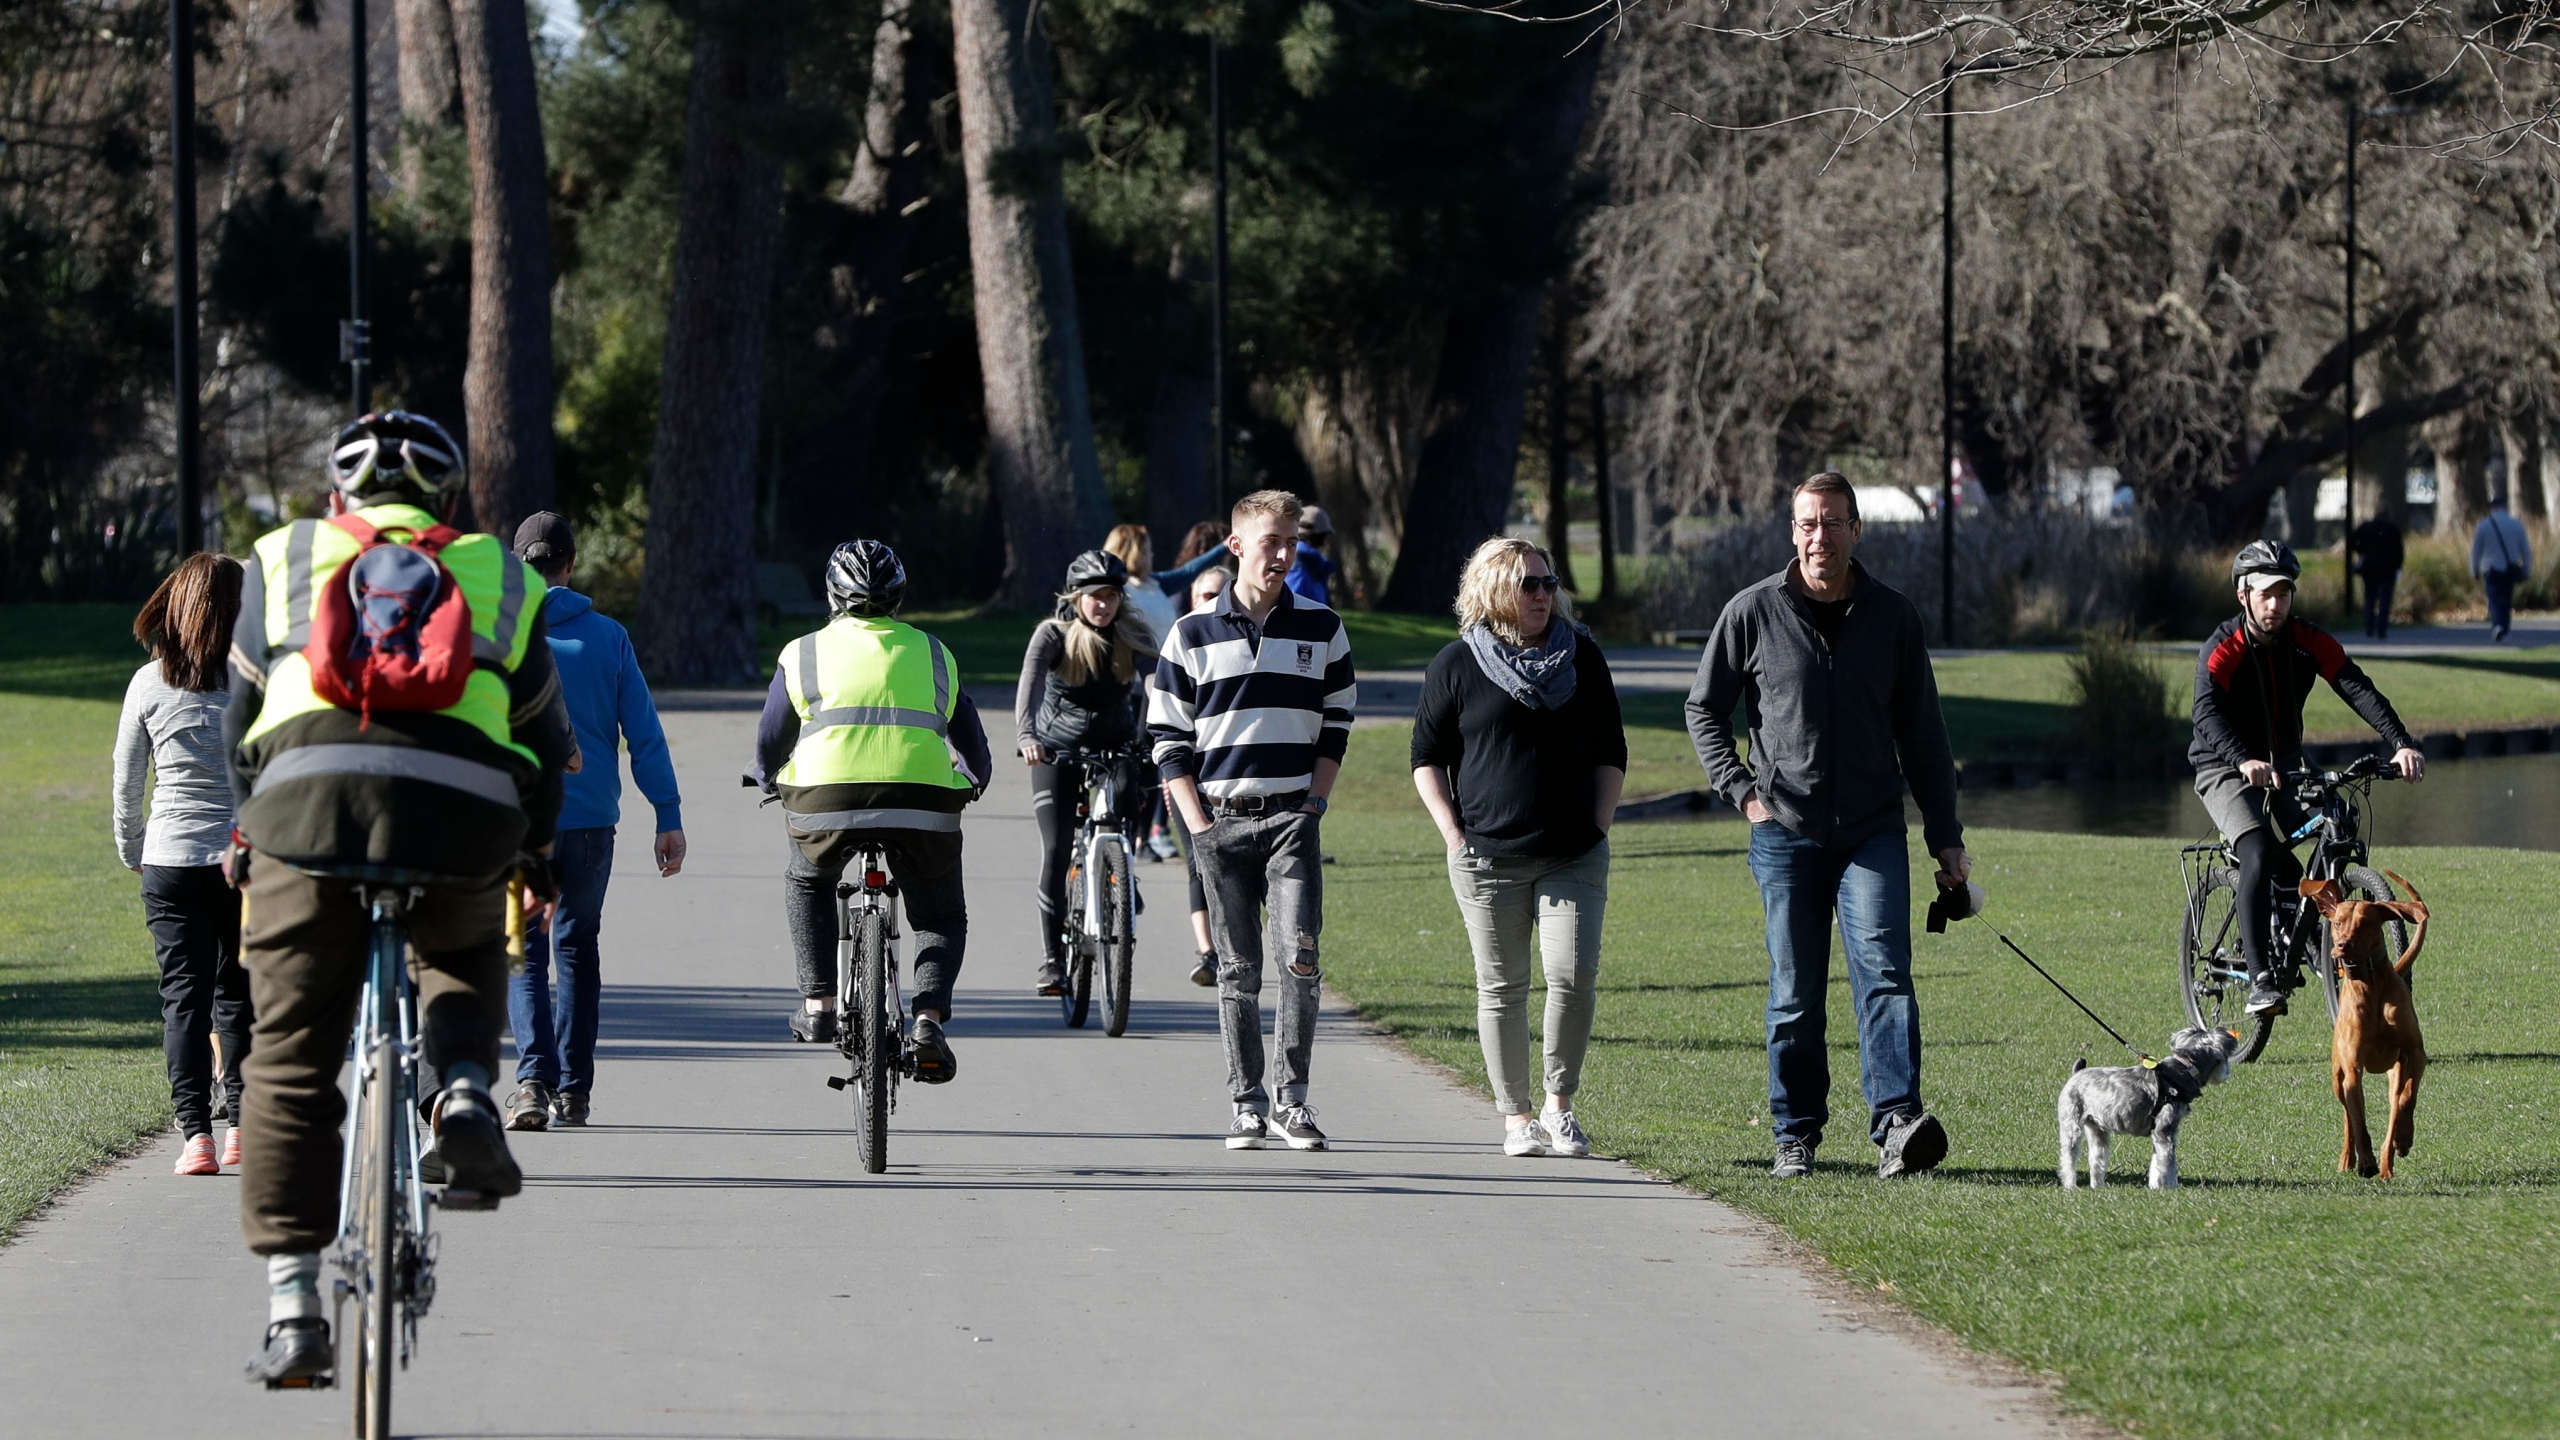 Residents exercise at Hagley Park in Christchurch, New Zealand, Sunday, Aug. 9, 2020. New Zealand on Sunday marked 100 days since it stamped out the spread of the coronavirus, a rare bright spot in a world that continues to be ravaged by the disease. (AP Photo/Mark Baker)